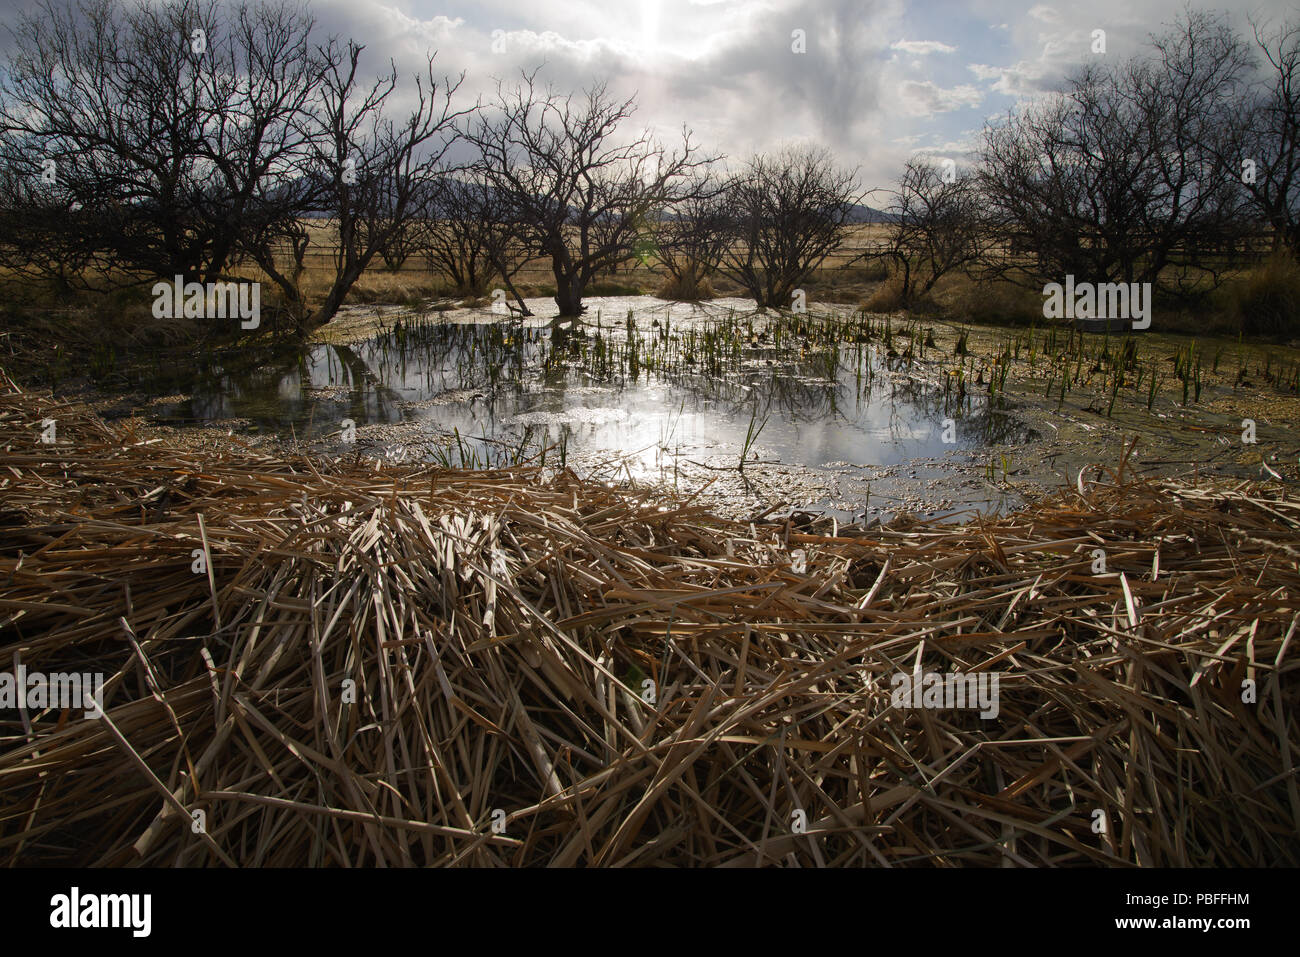 Endangered Species Conservation Site, A Ranching/Conservation Cooperative Project, The Frog Project, A National Fish and Wildlife Foundation Sponsored Stock Photo